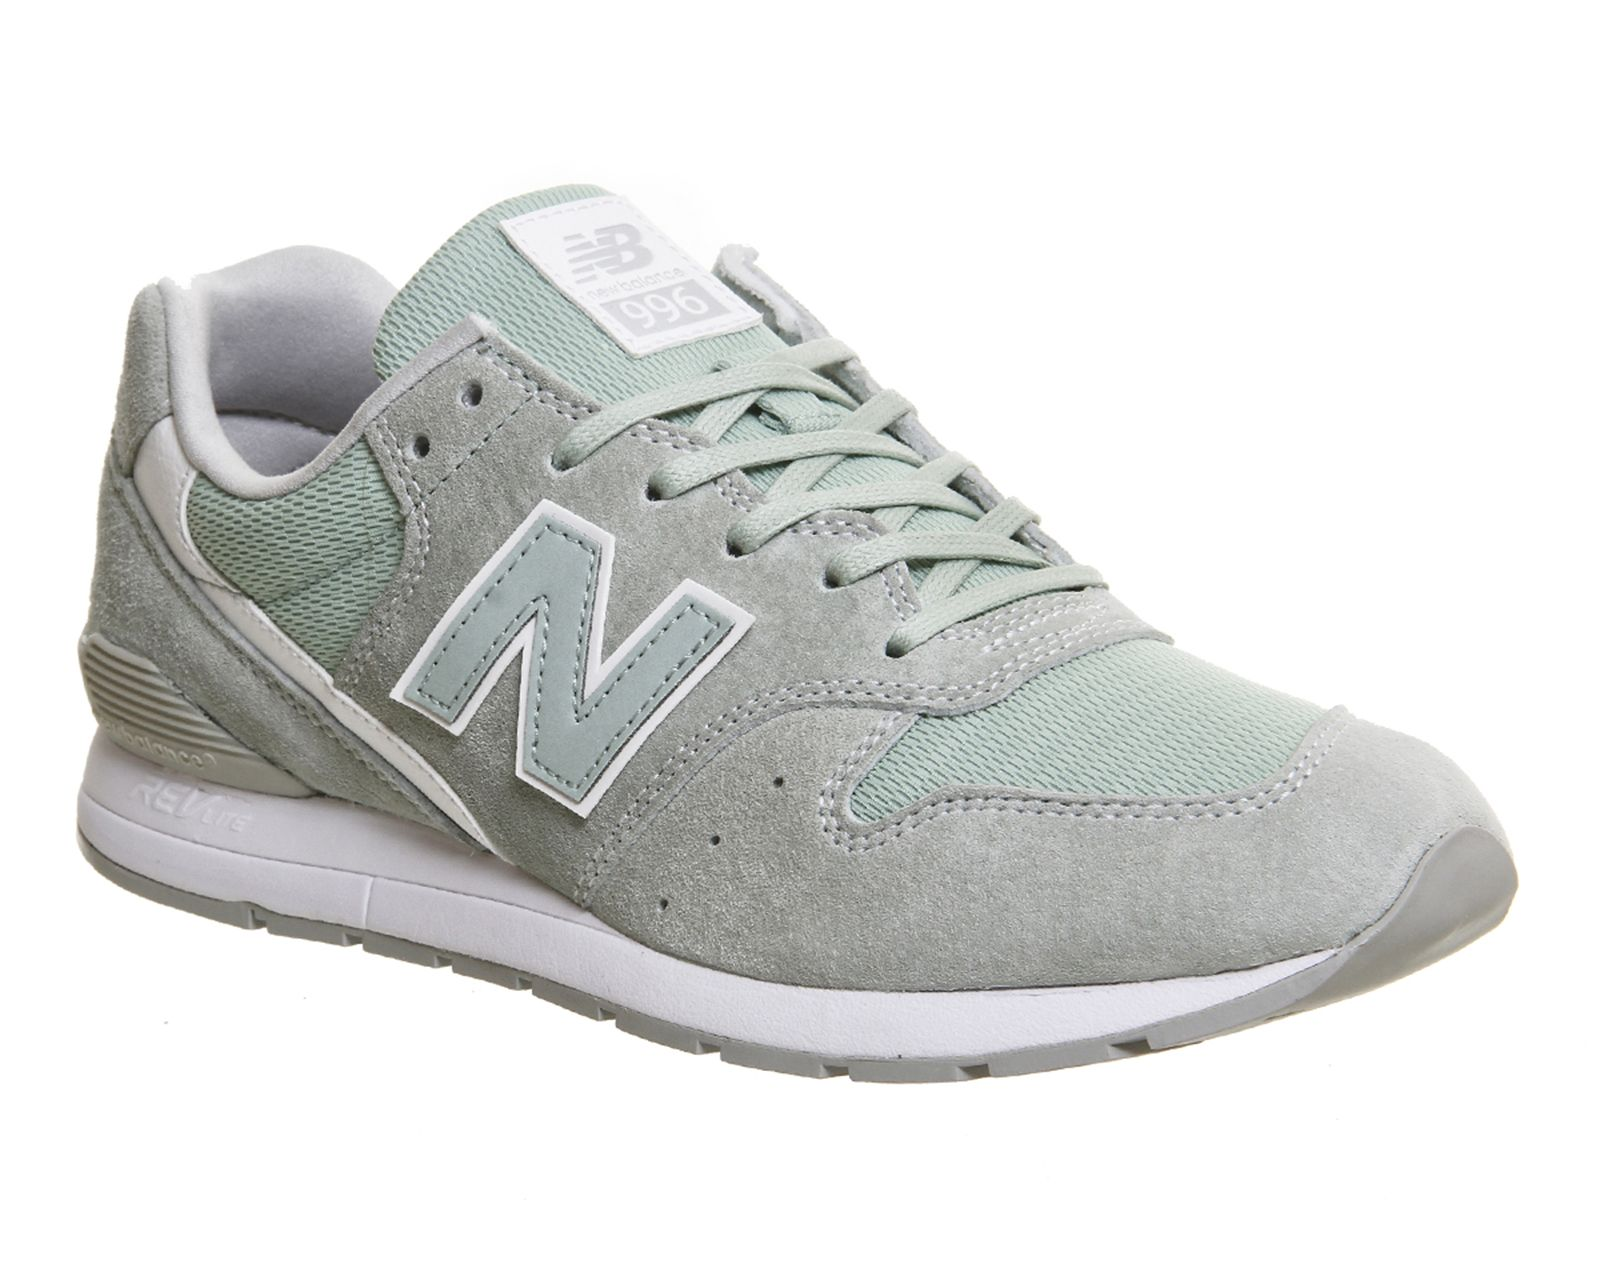 Mint Grey New Balance Mrl996 From Office Co Uk